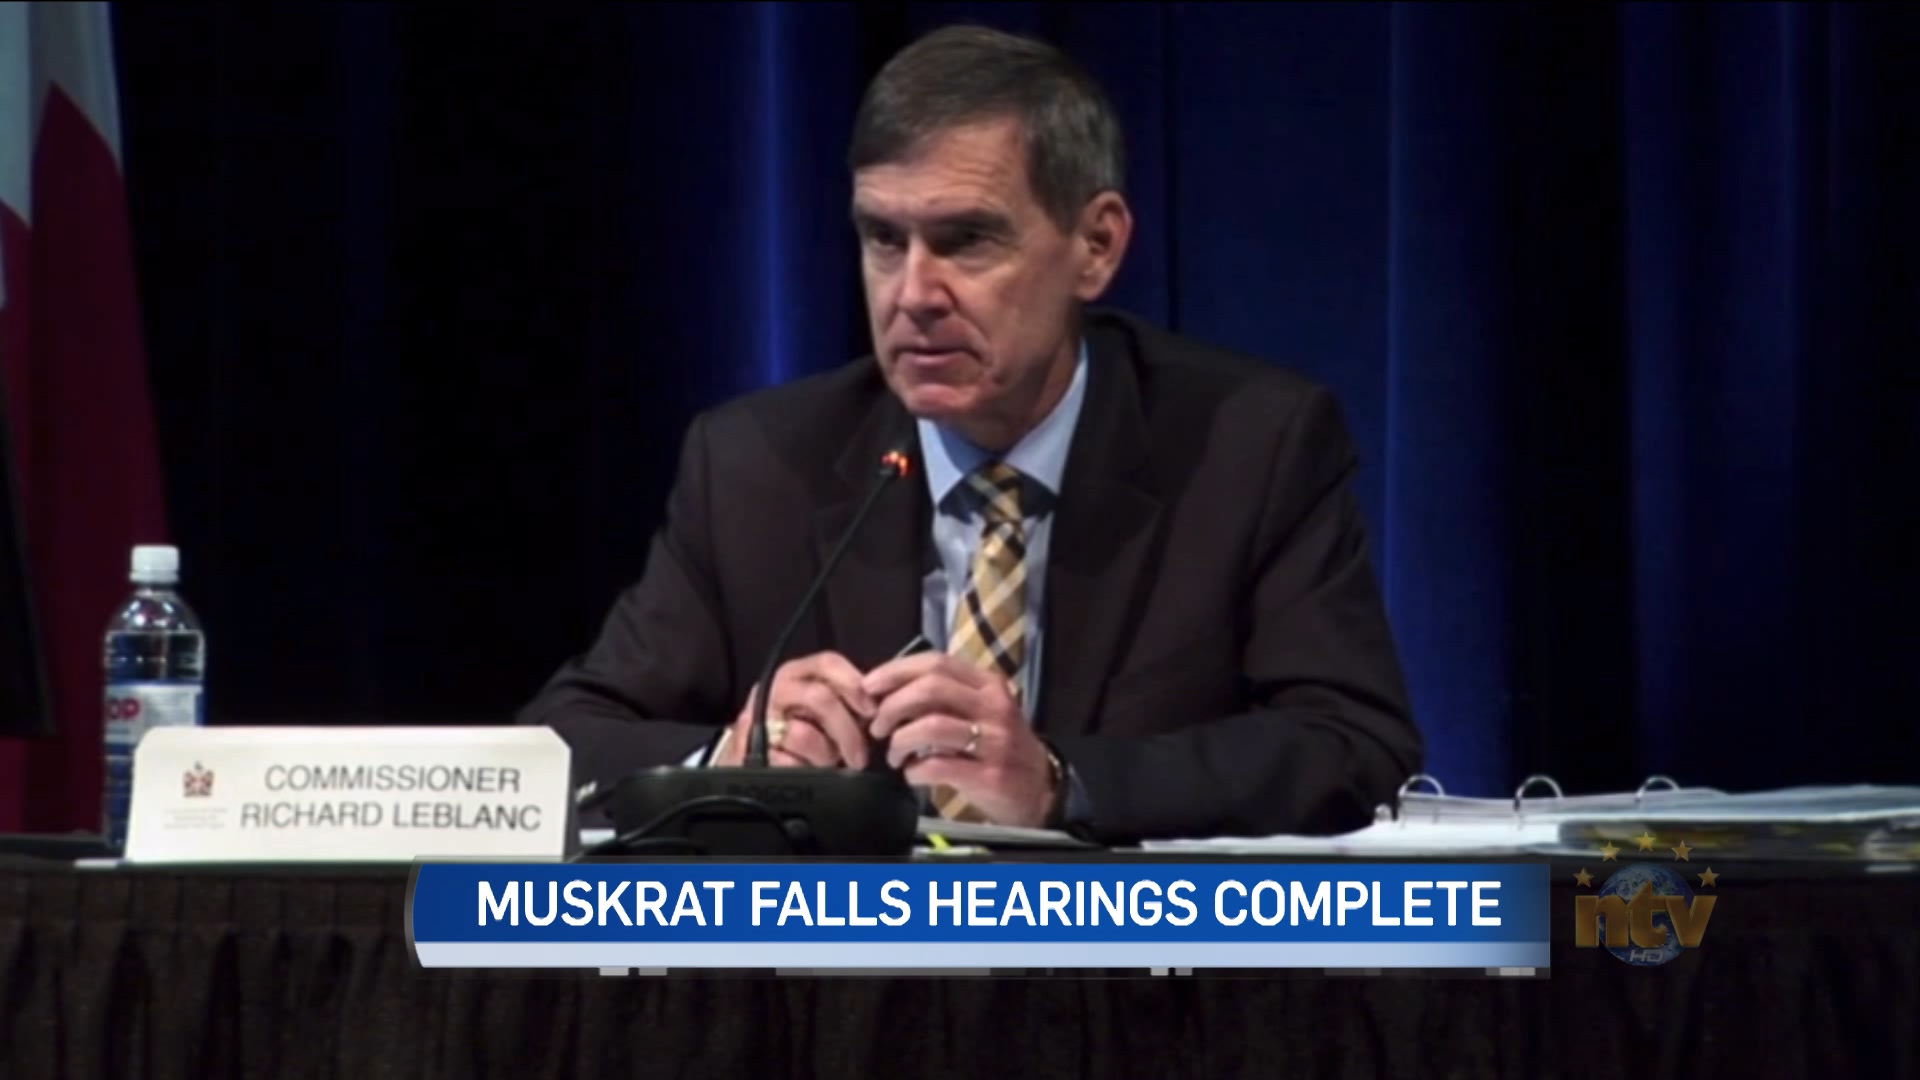 Methylmercury delays 'confounding' commissioner says as Muskrat Falls inquiry ends - ntv.ca